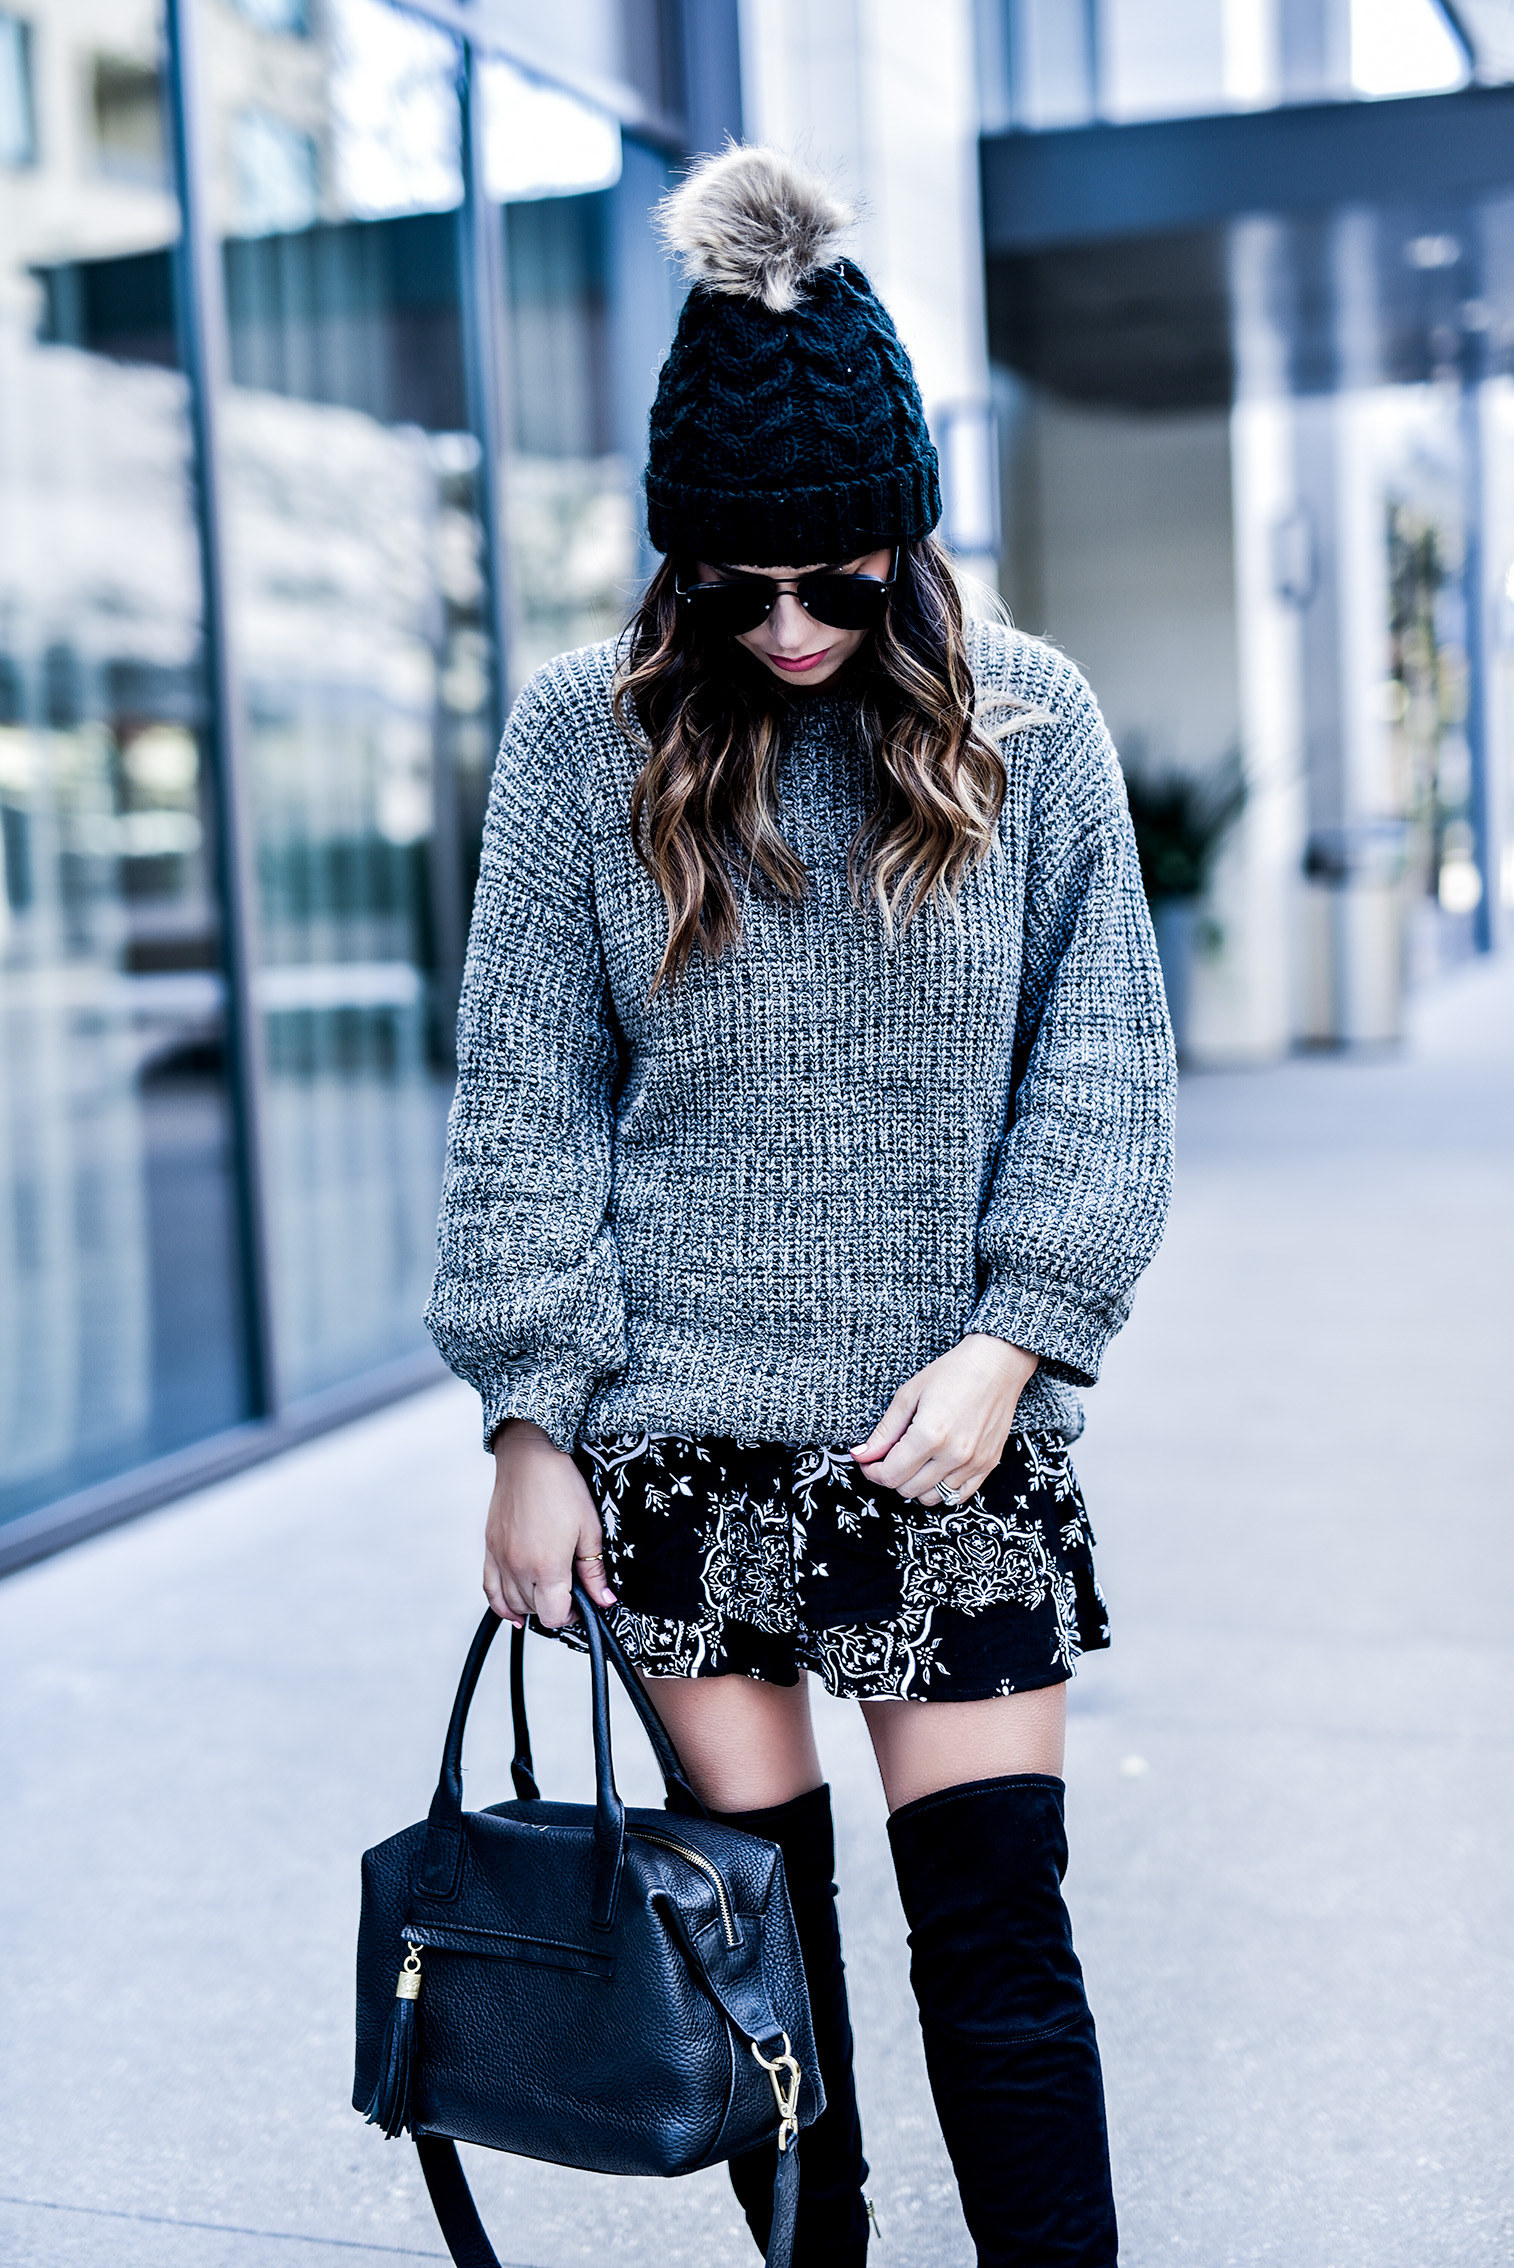 Flaunt and Center Houston style and fashion blogger Tiffany Jais wearing a chunky knit grey sweater by revolve and a printed skirt by revolve clothing, with a black pom pom beanie, and over the knee boots   Streetstyle